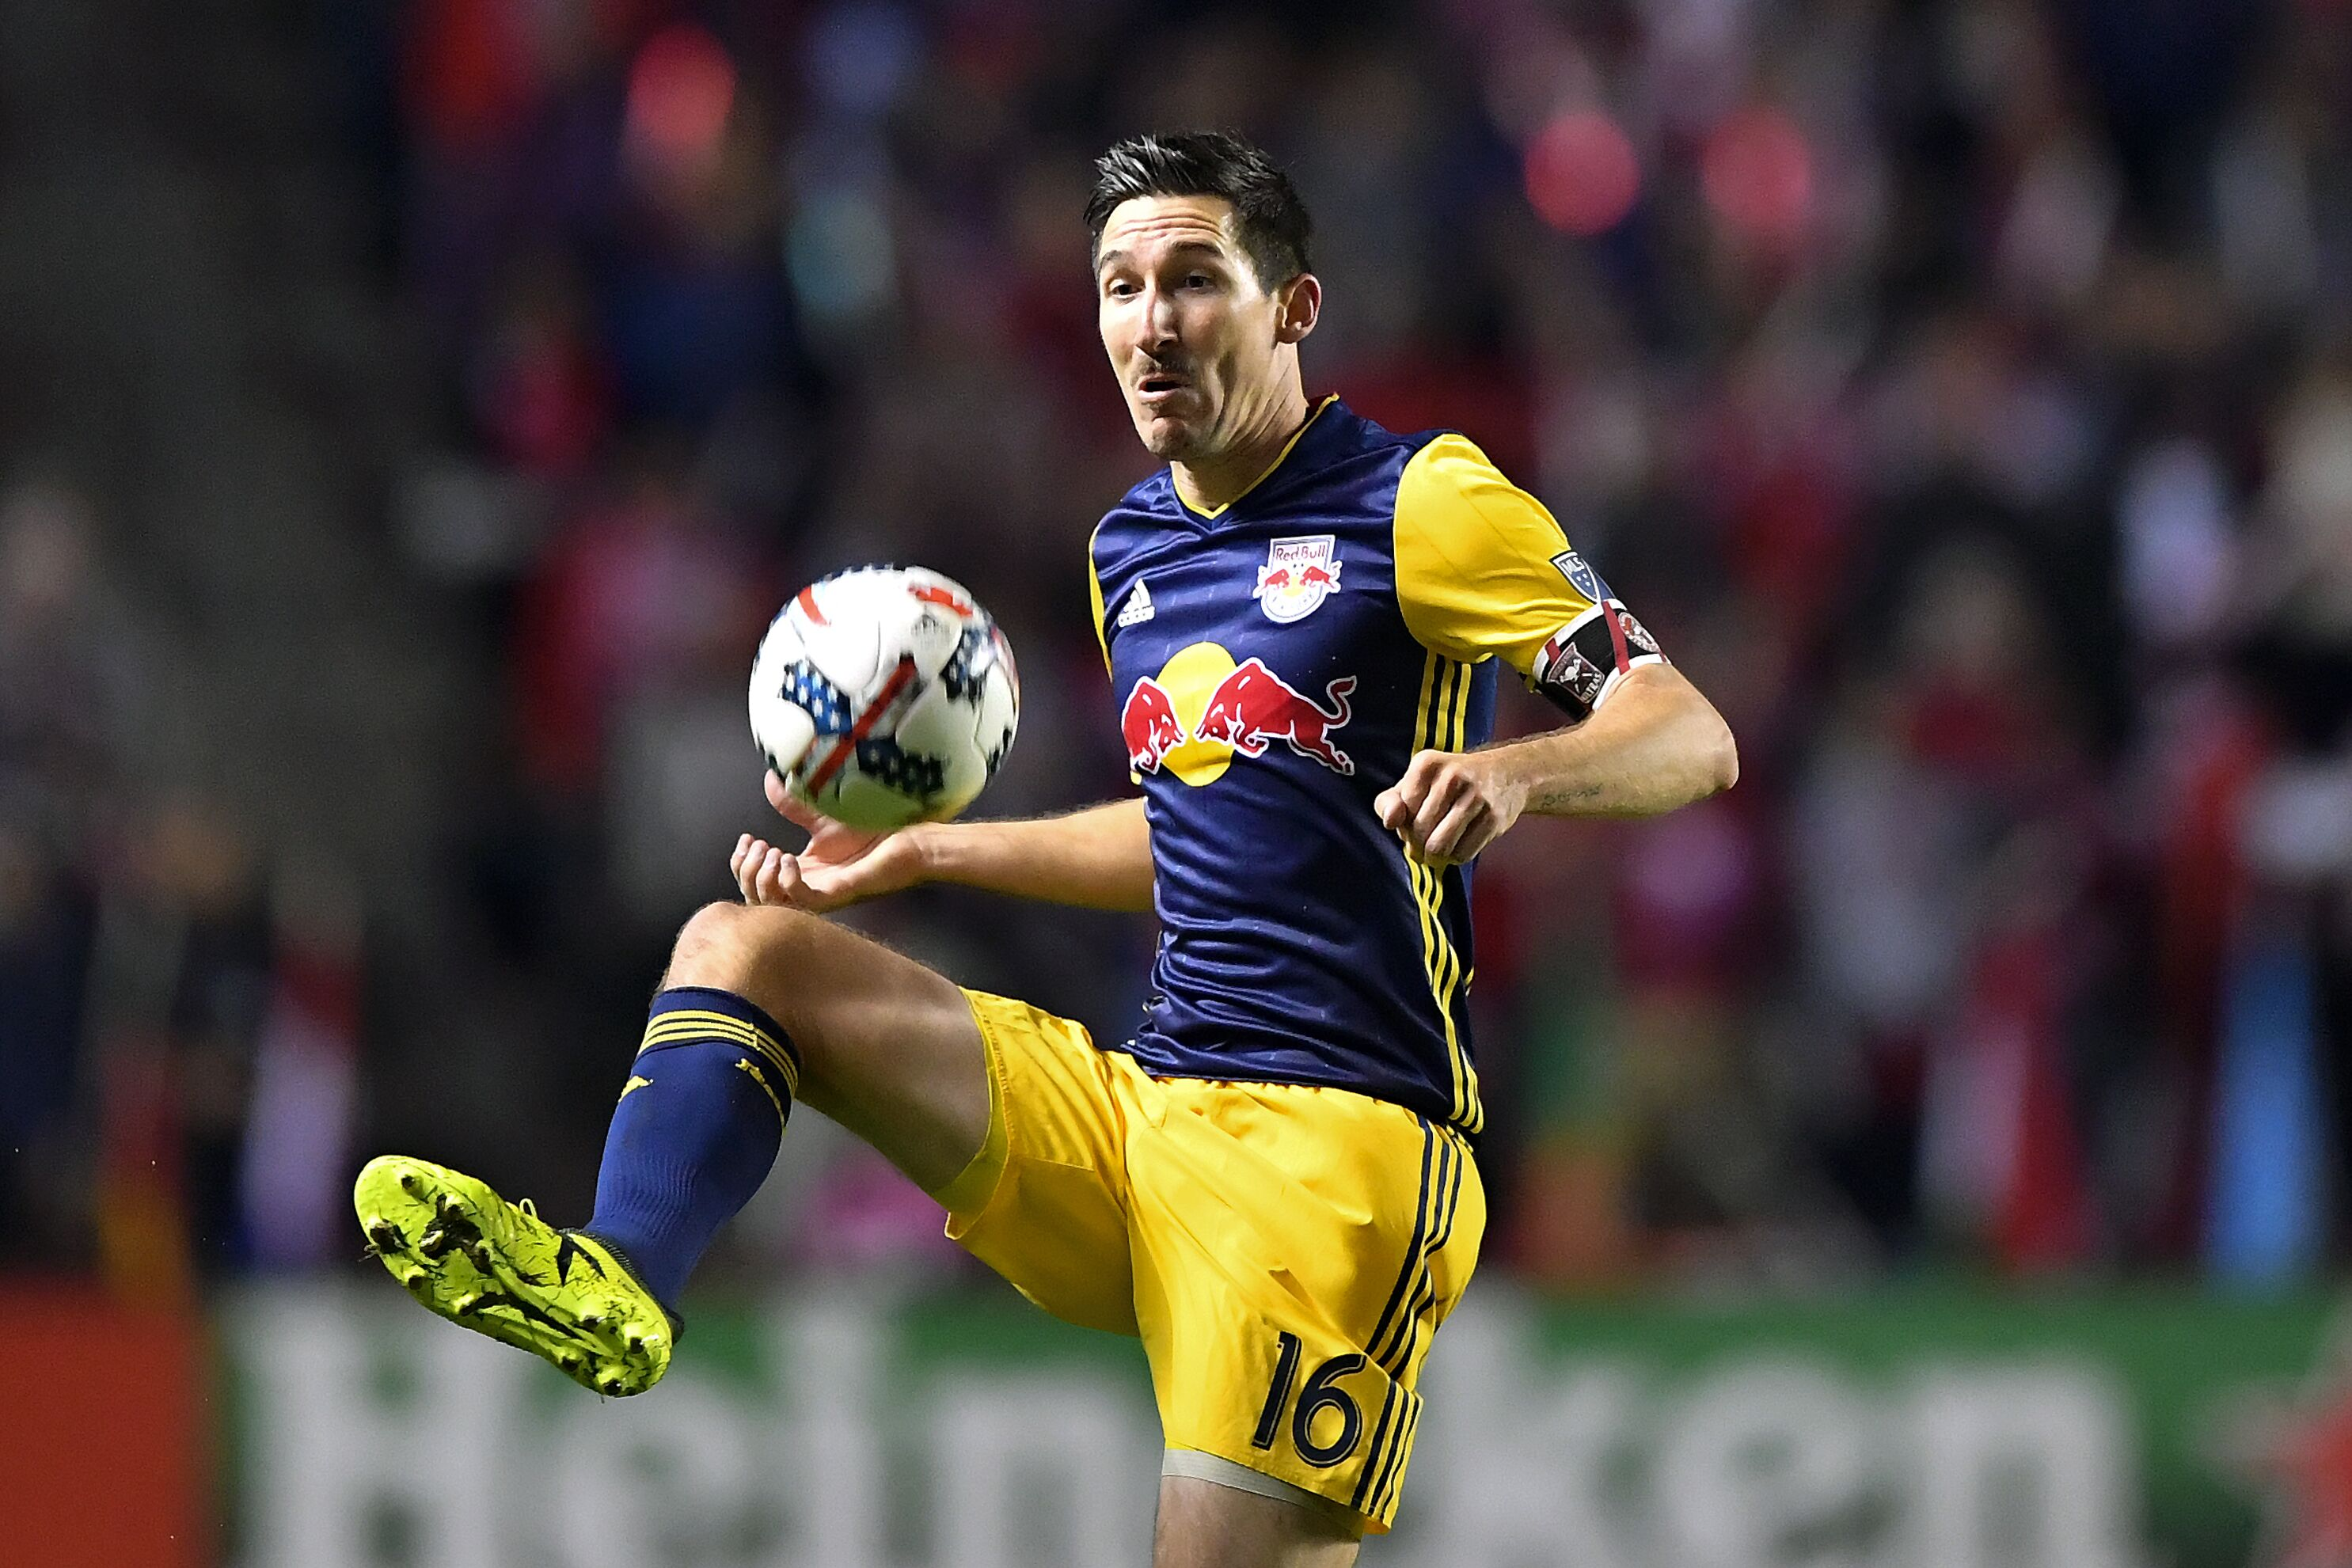 866713230-soccer-oct-25-mls-cup-playoffs-ny-red-bulls-at-chicago-fire.jpg